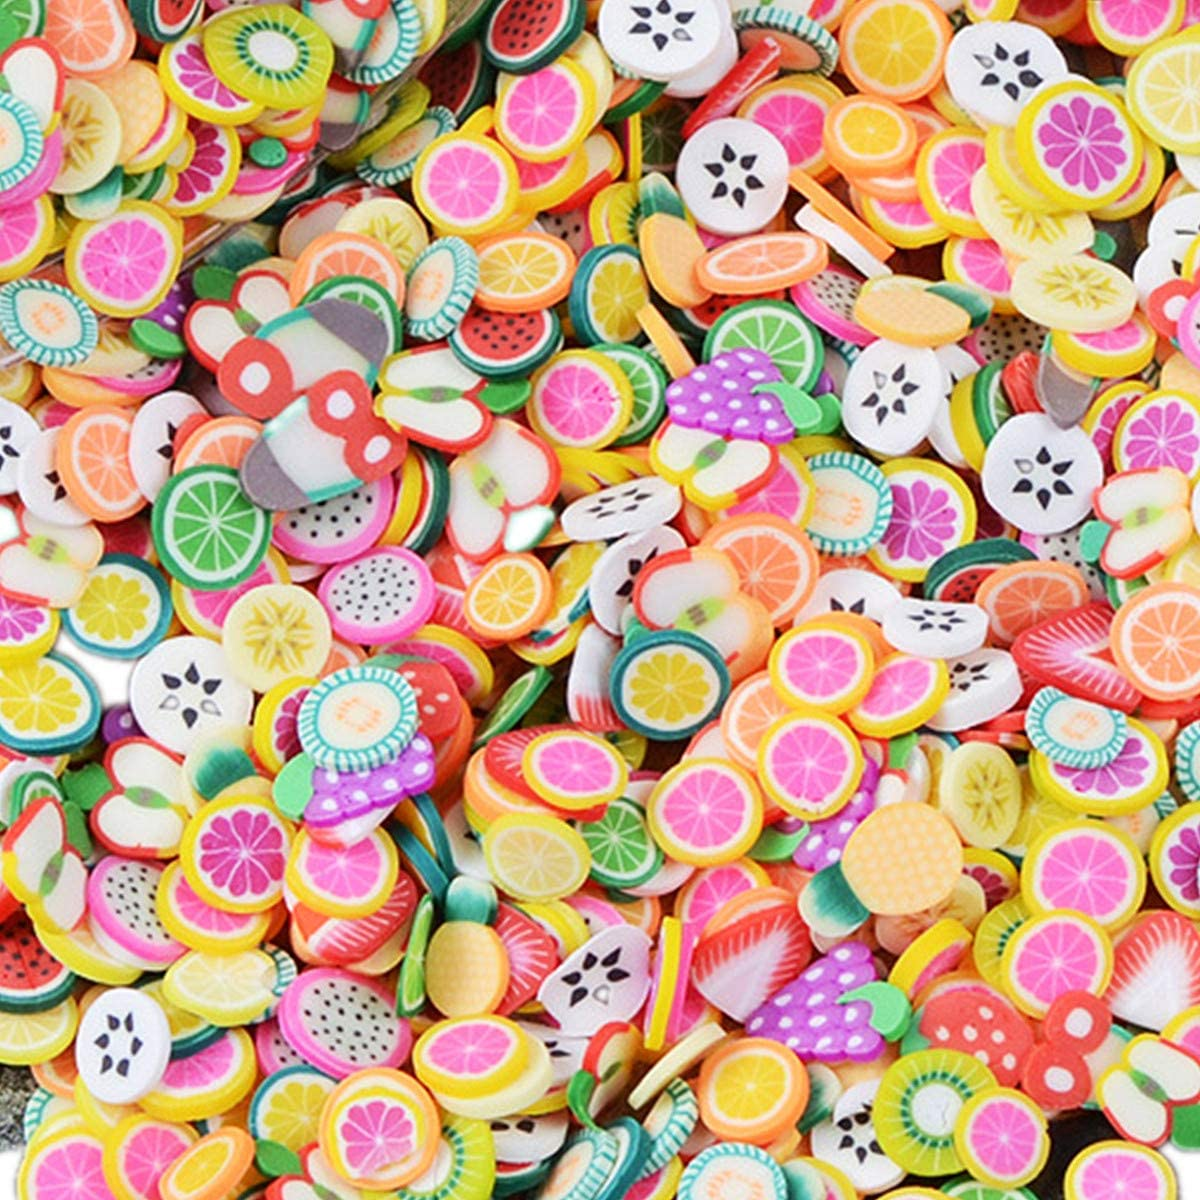 Fake Sprinkles Clay Slices for Nail Art and Slime Fruit Sprinkles BANANAS Polymer Clay Slices